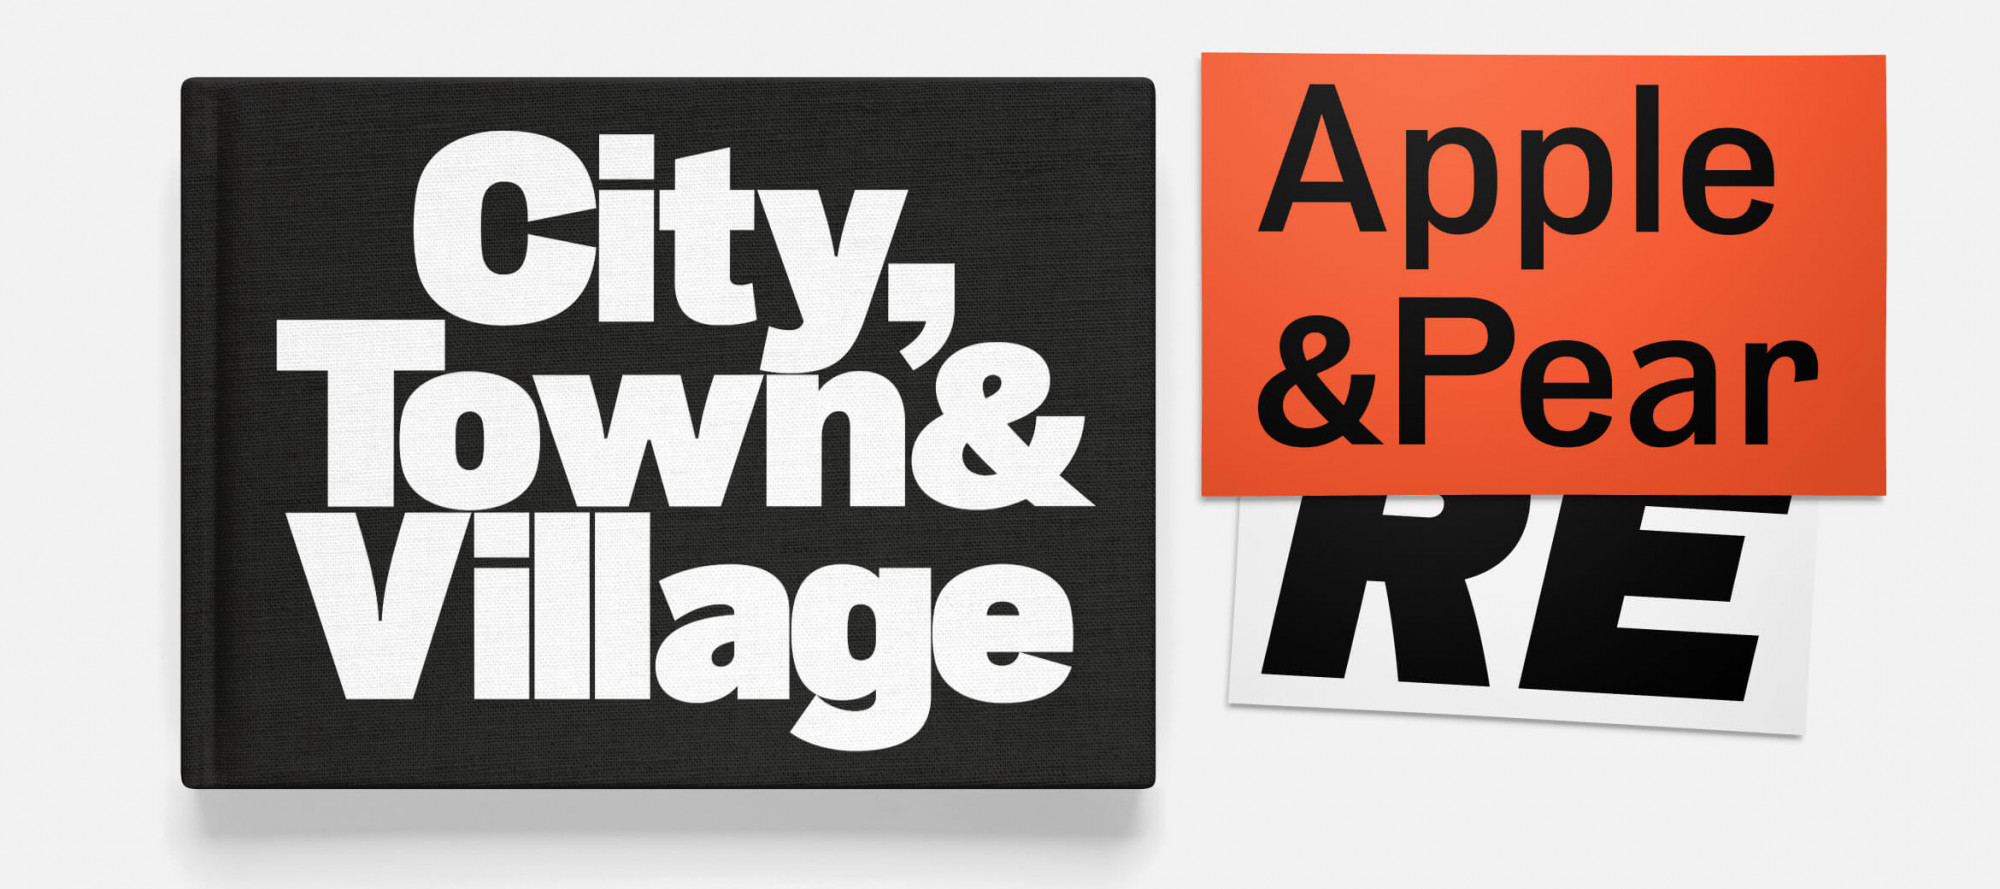 Slavia and three other typefaces from Superior Type are 25% off